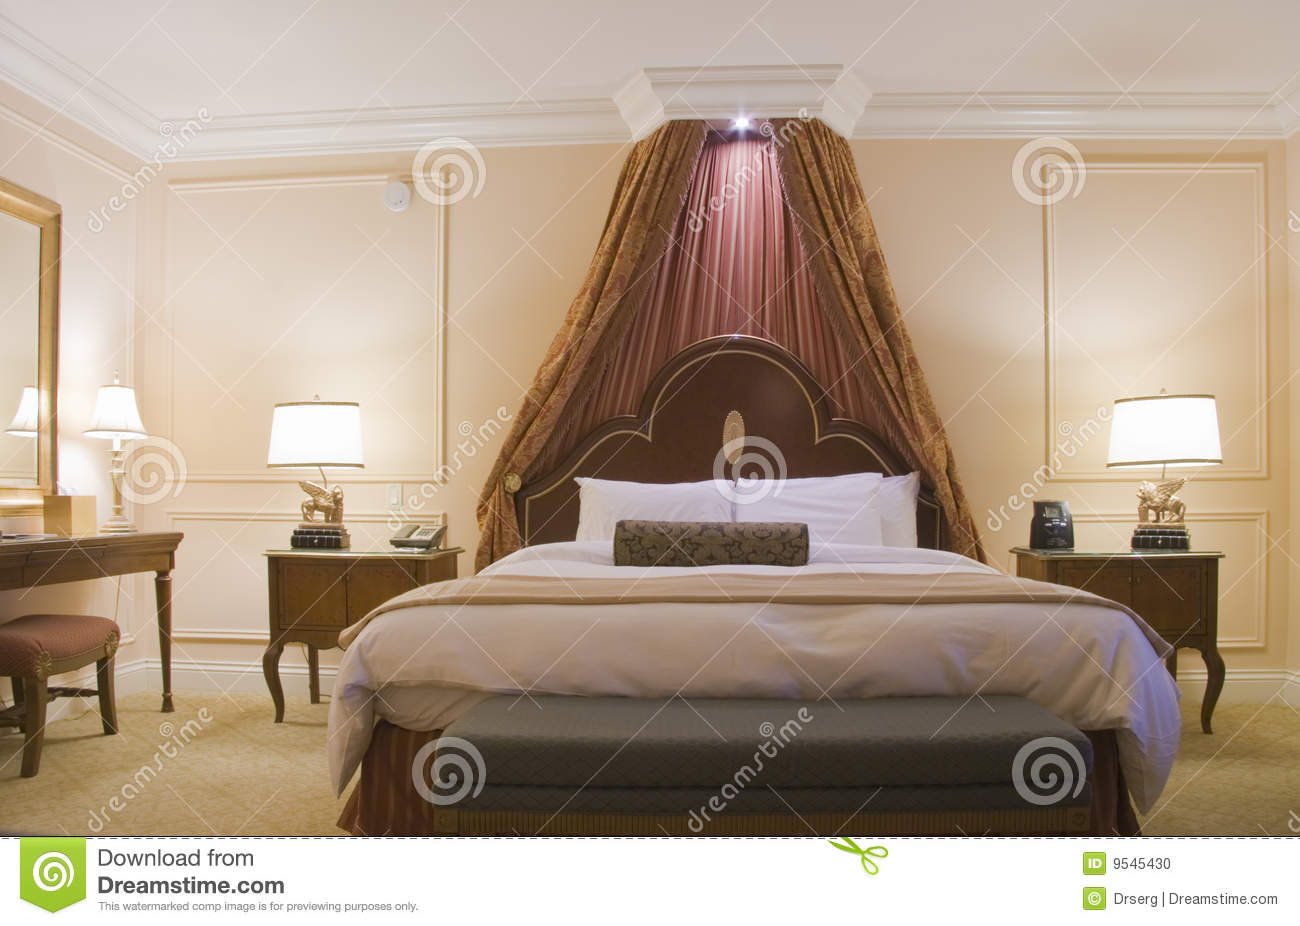 - Bedroom With Canopy King-size Bed Stock Photo - Image Of Empty